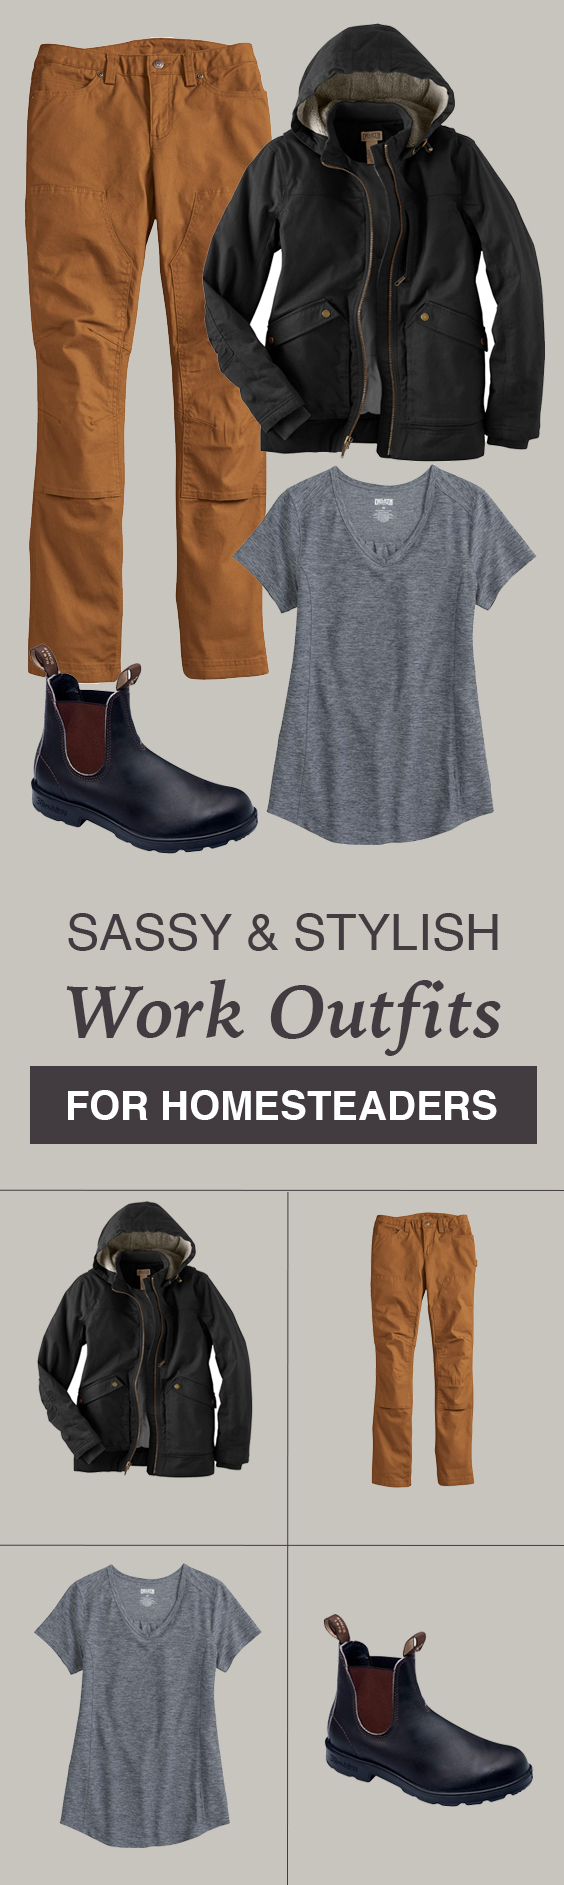 This site has lots of great ideas for finding quality workwear clothing & outfits for women that don't suck! Great for homesteading, barn chores and even camping.